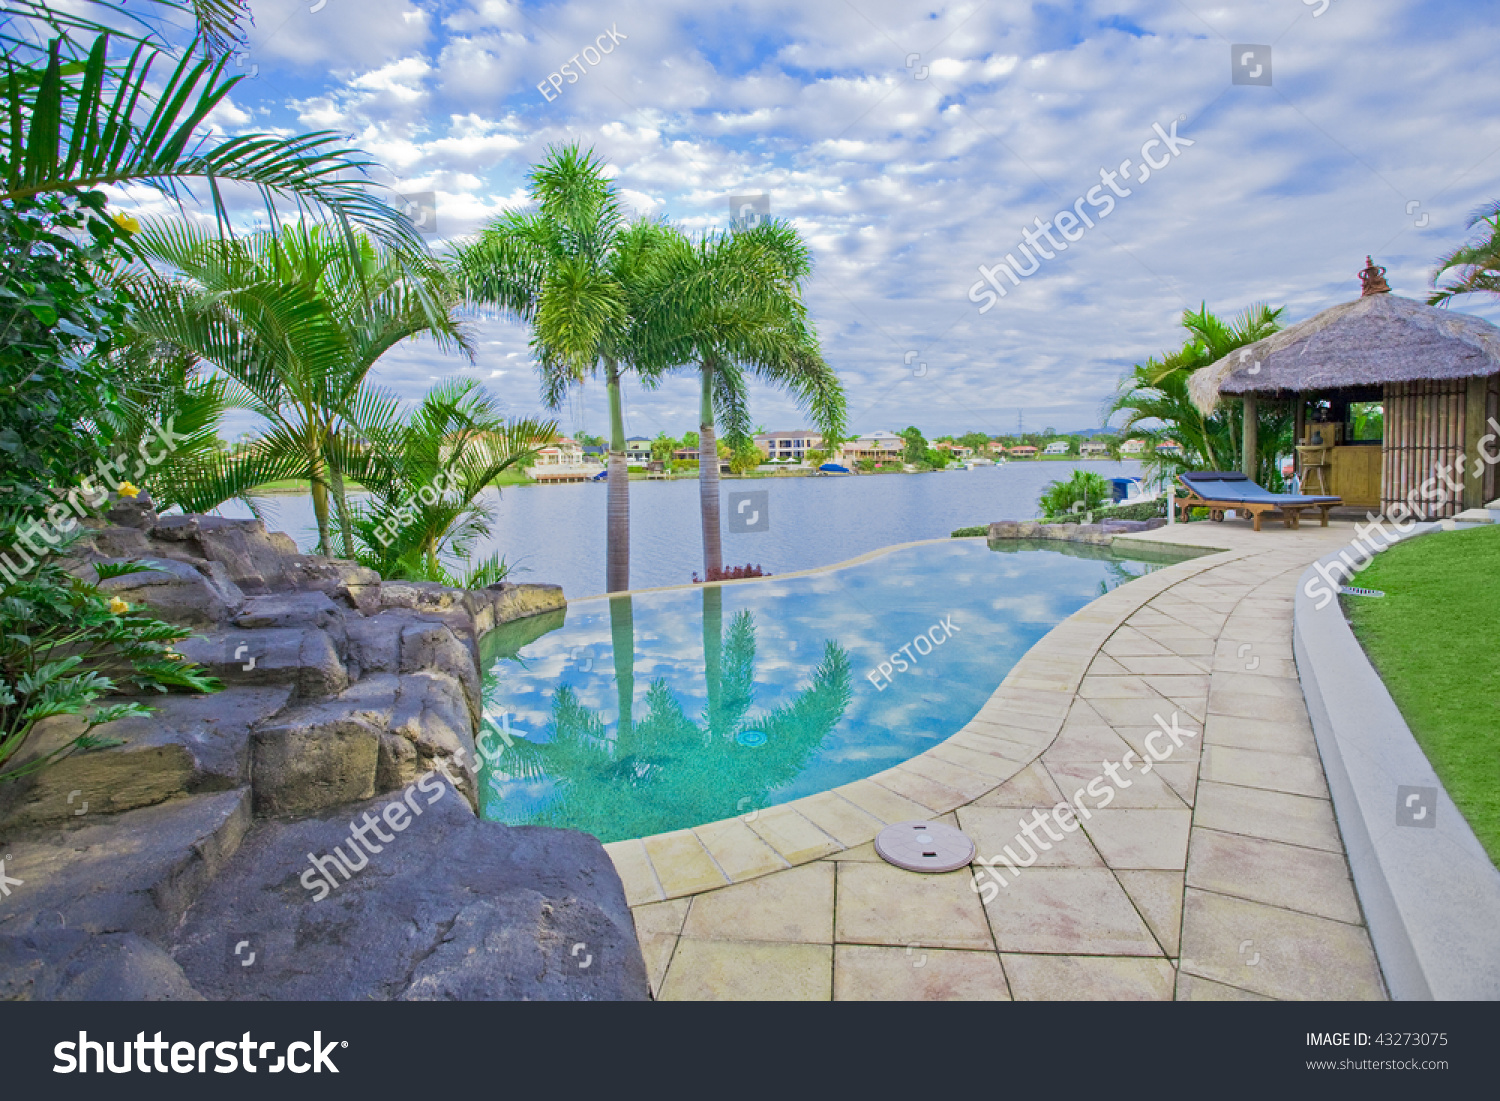 Waterfront Mansion With Pool And Bali Hut Overlooking The Canal Stock Photo 43273075 Shutterstock